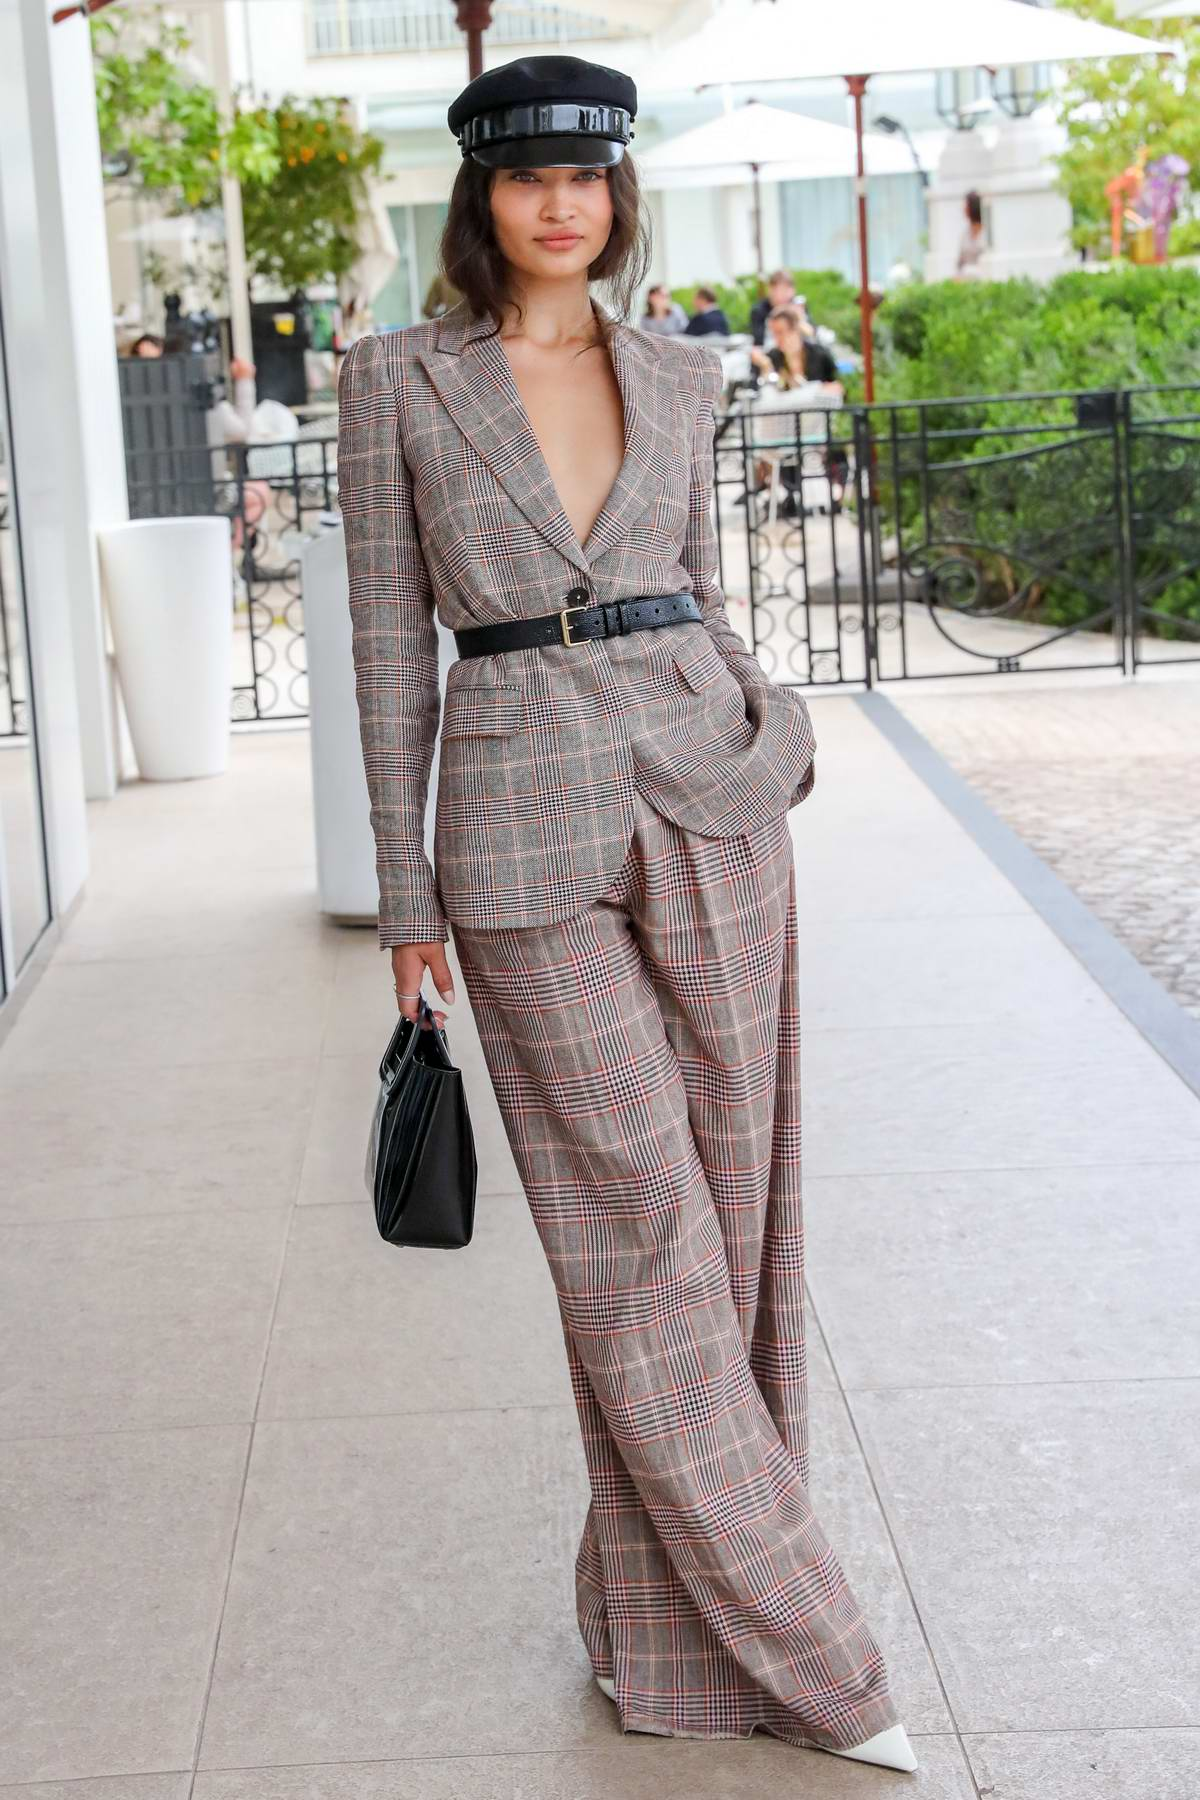 Shanina Shaik looks stylish in a plaid suit while out during the 72nd annual Cannes Film Festival in Cannes, France